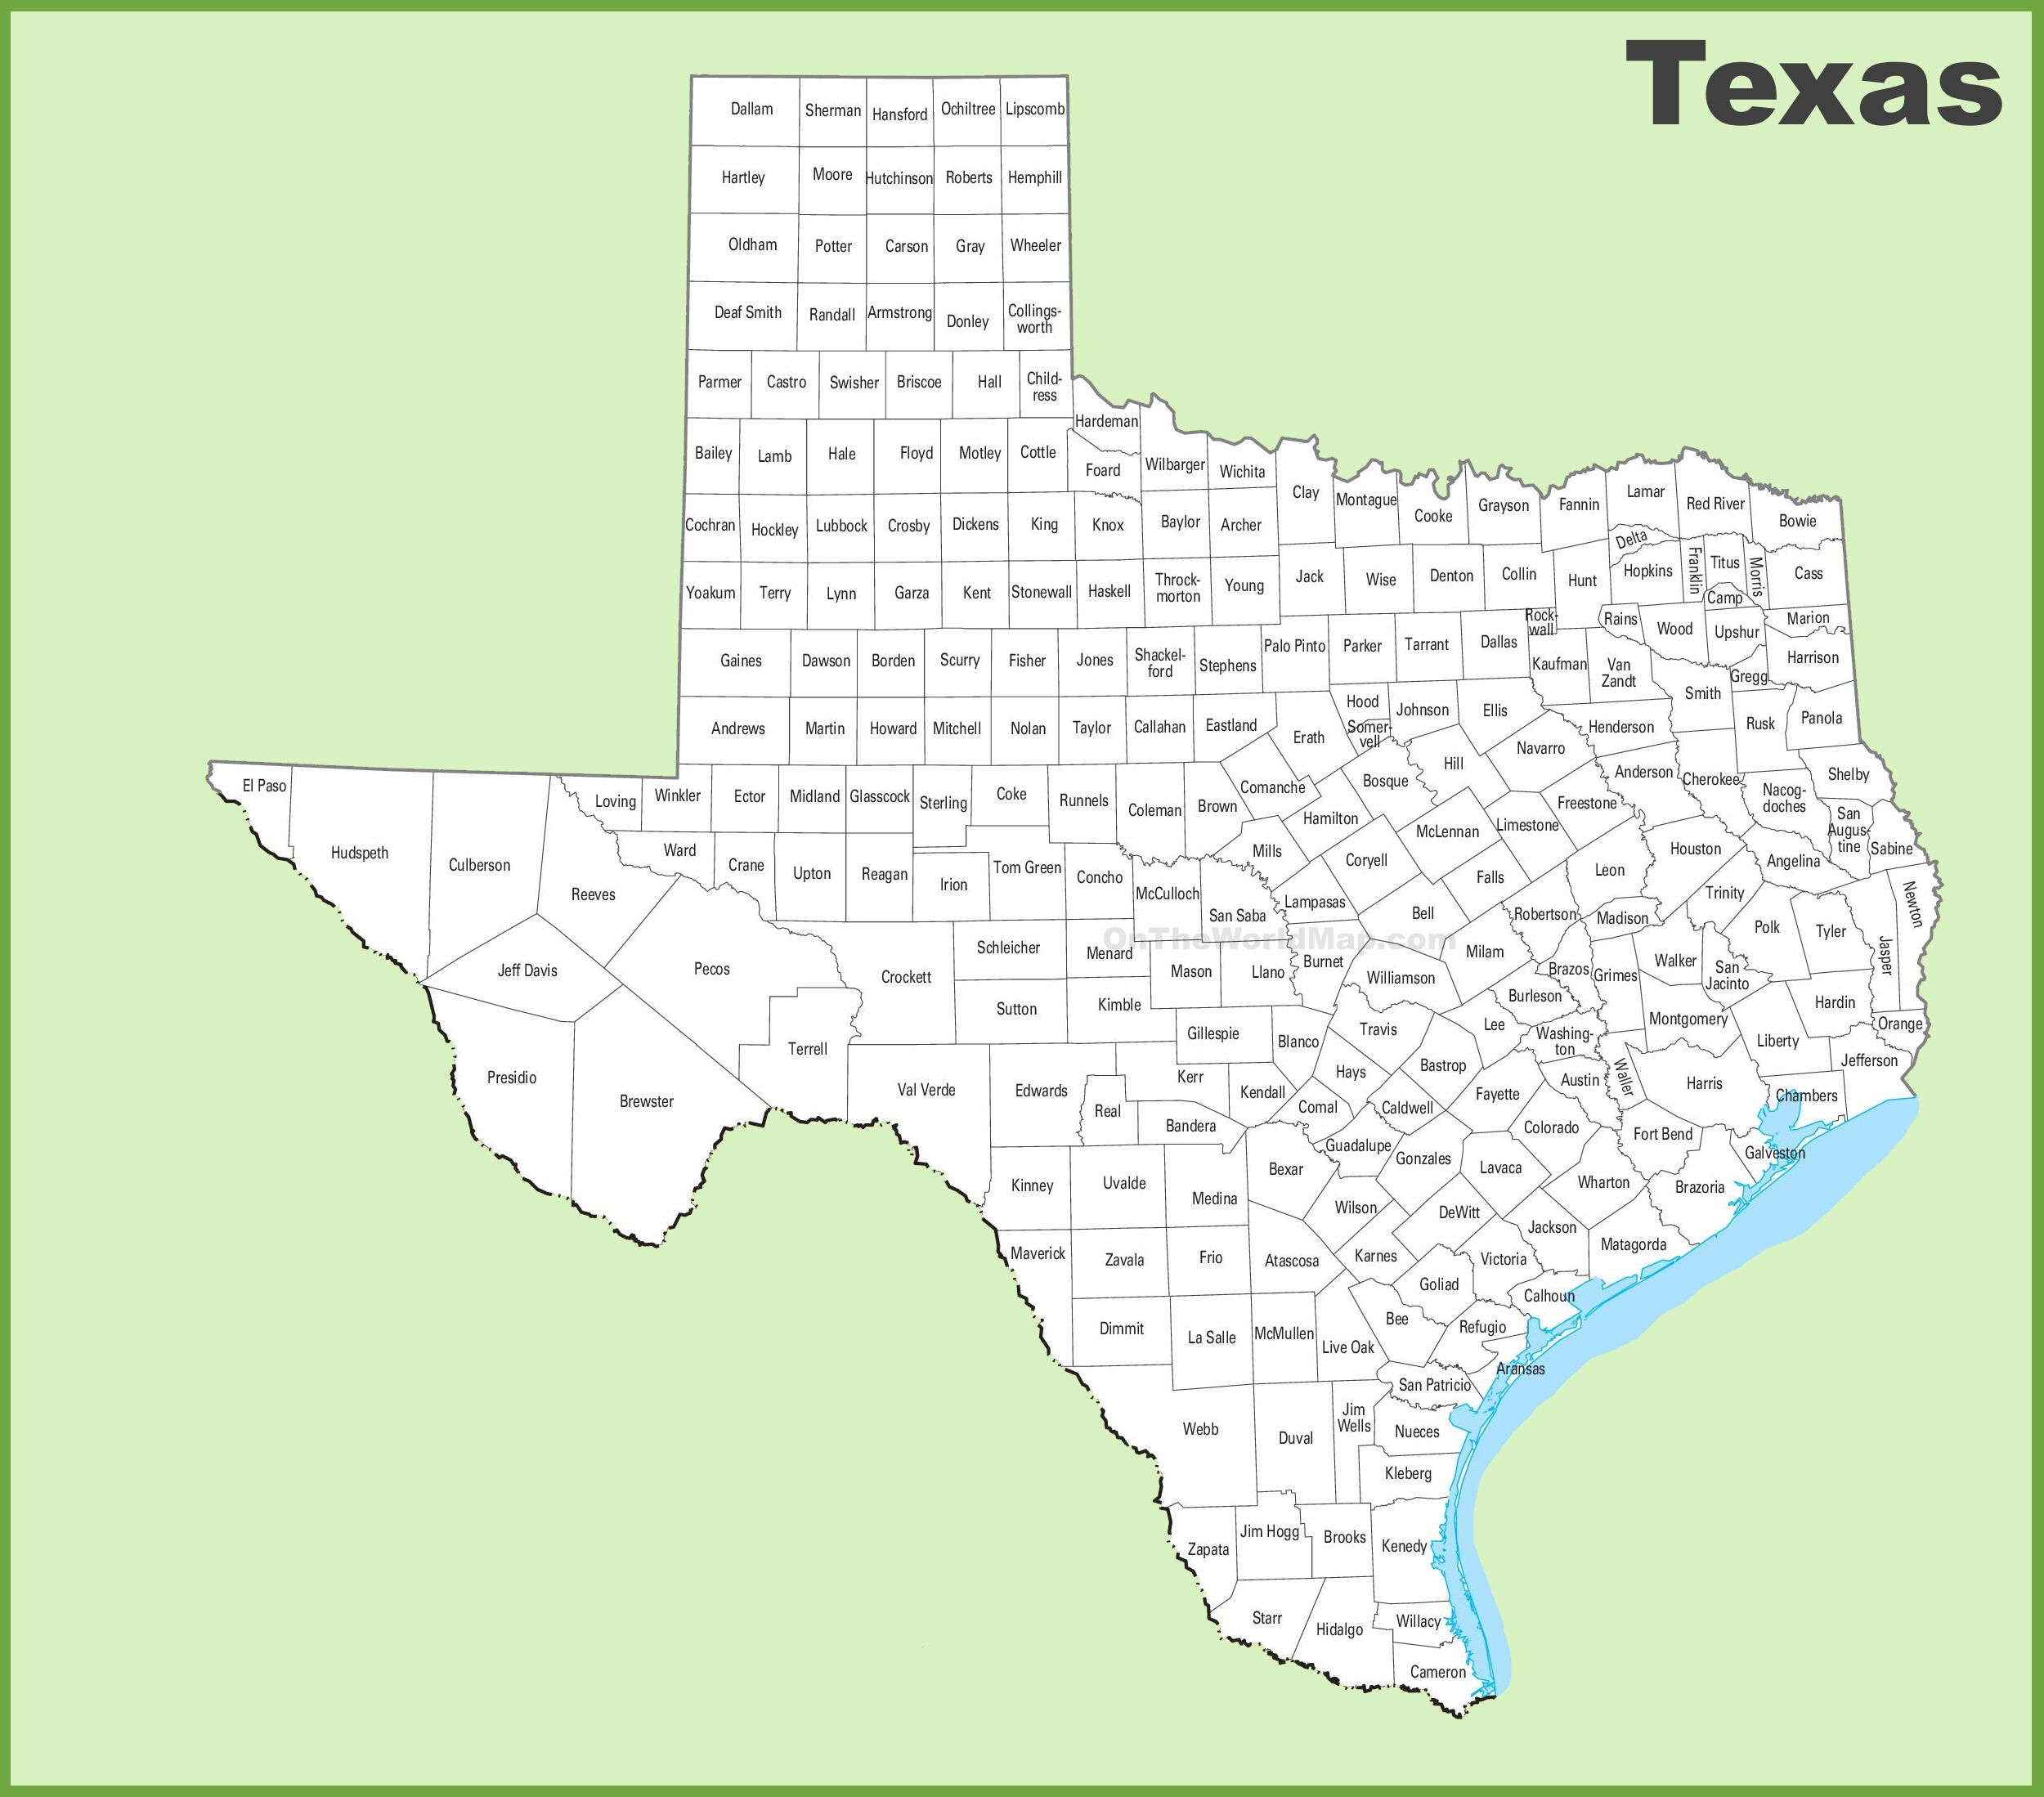 Texas County Map - Texas State Map With Counties